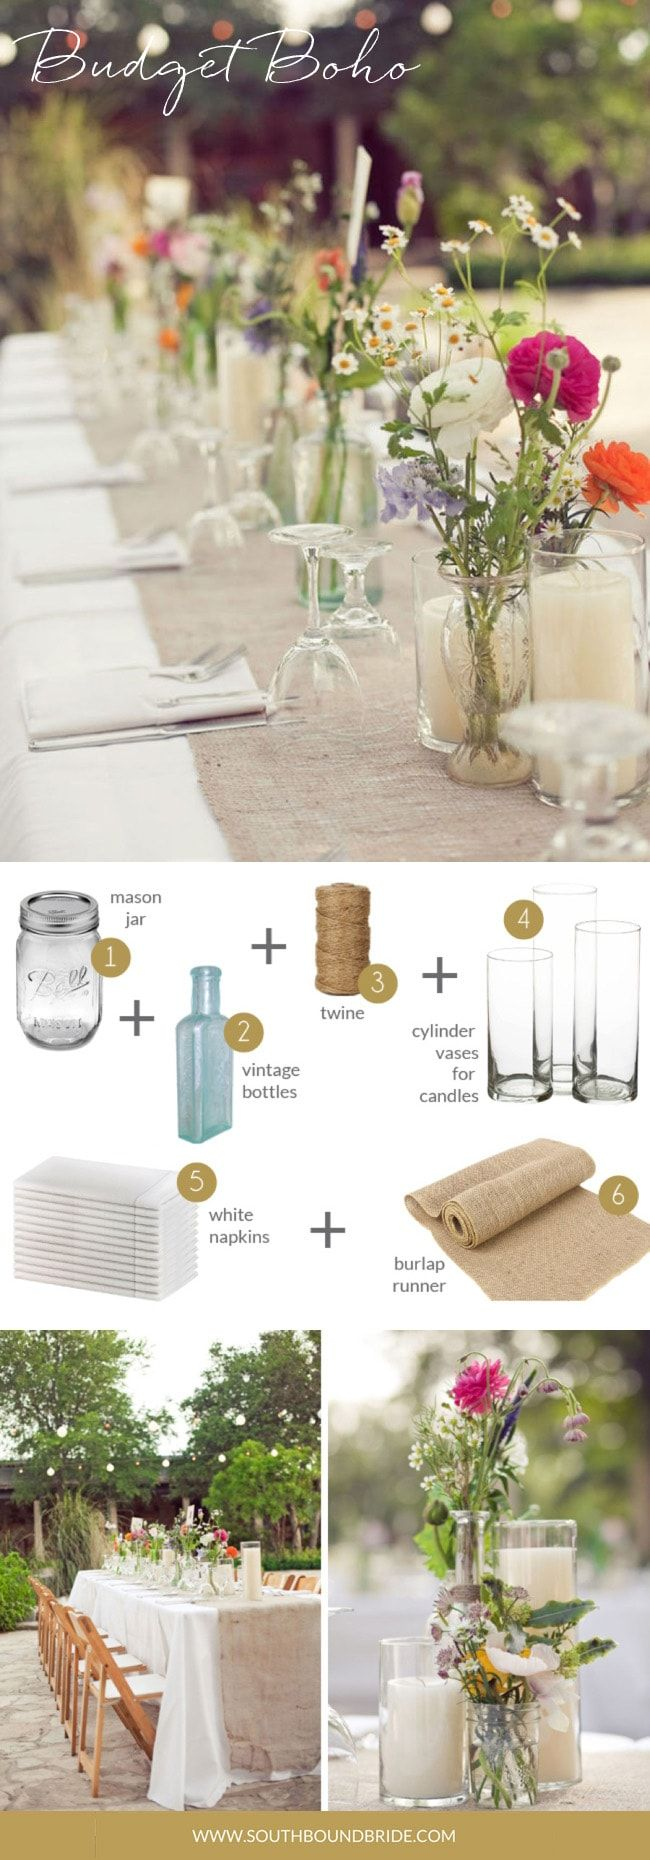 How to Style a Boho Wedding Tablescape